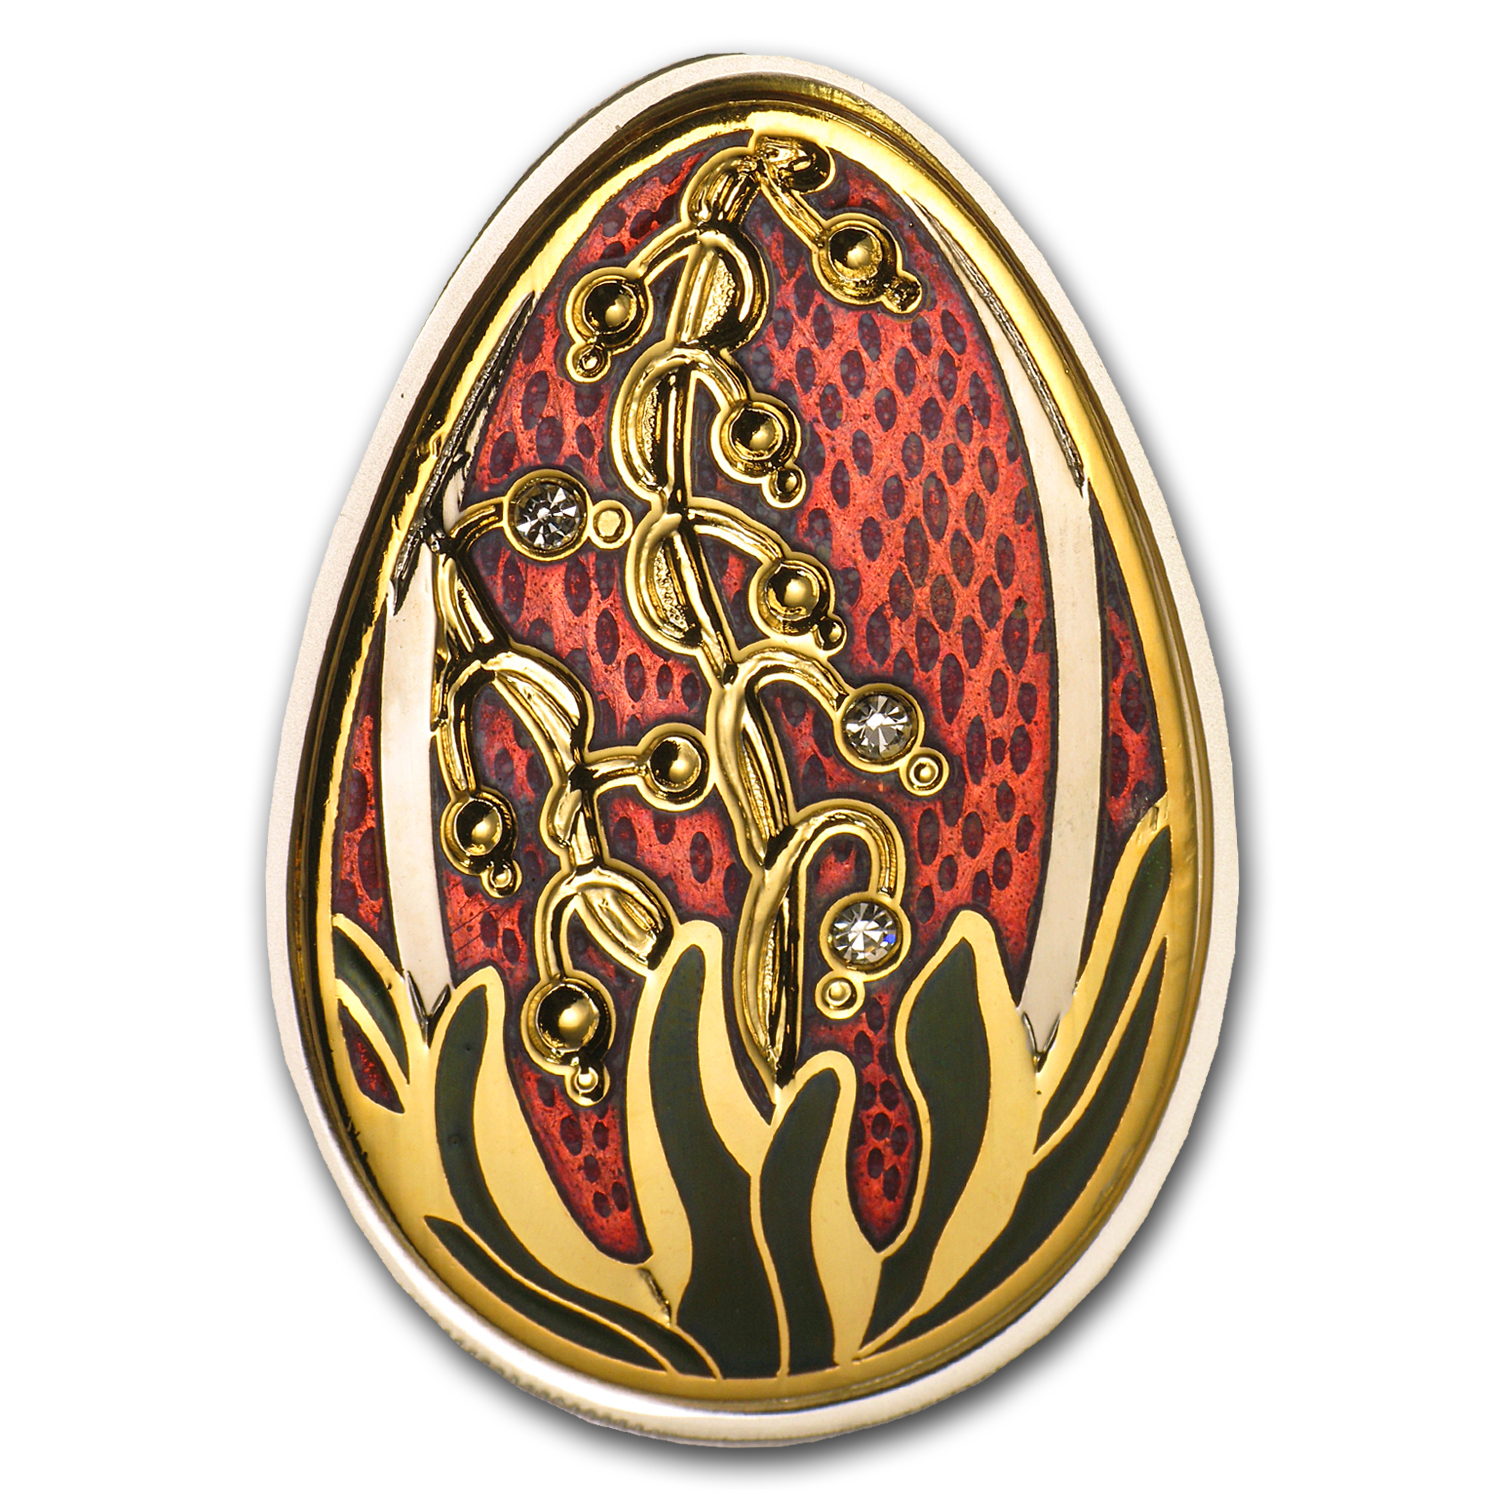 Cook Islands 2013 Silver Imperial Egg in Cloisonné -Beauty in Red